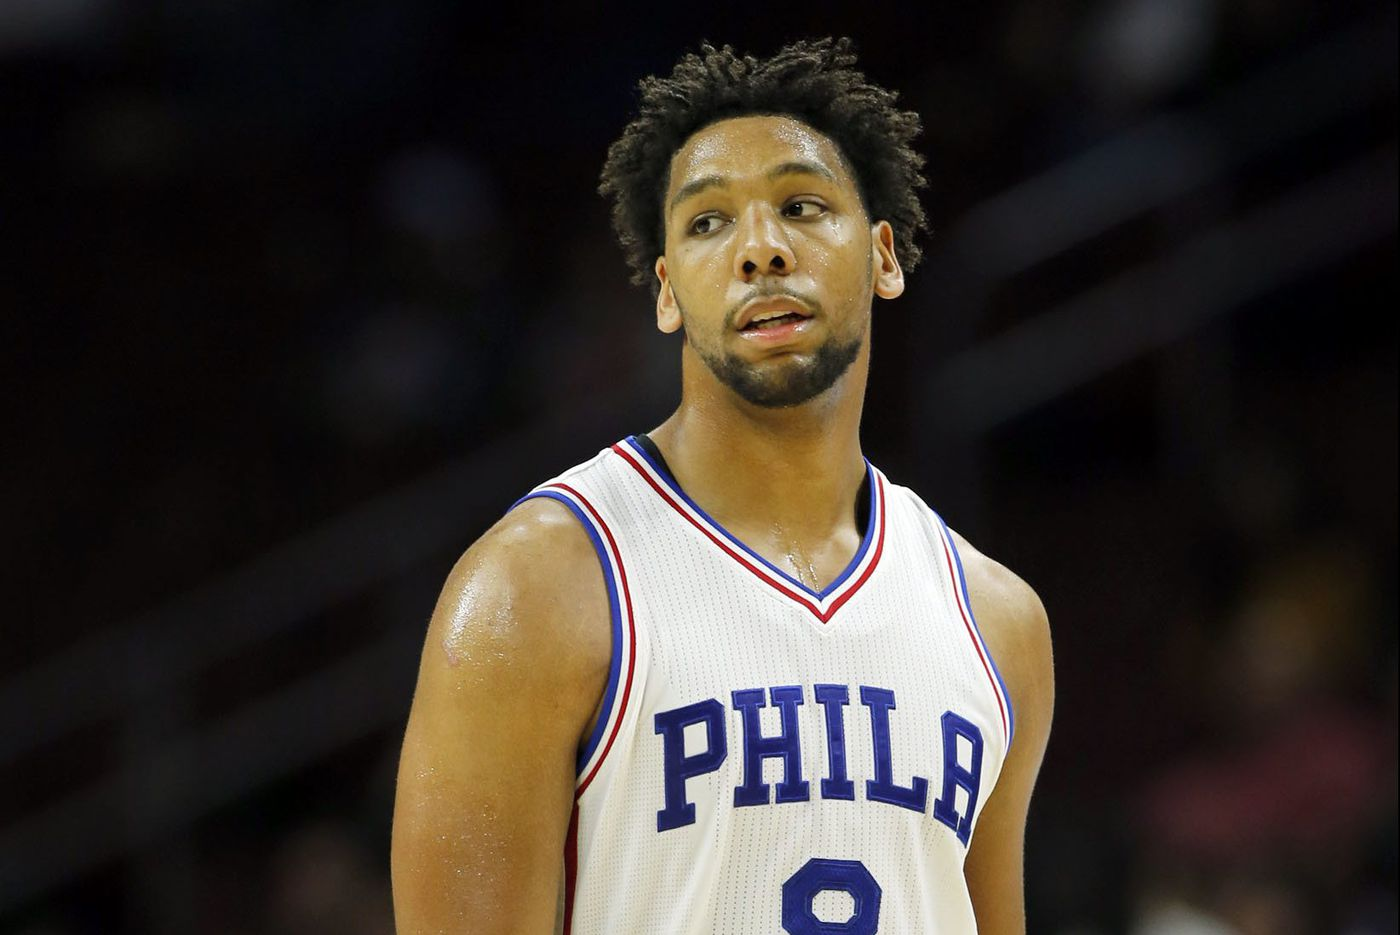 Report: Jahlil Okafor, former Sixers first-round pick, signs with Pelicans